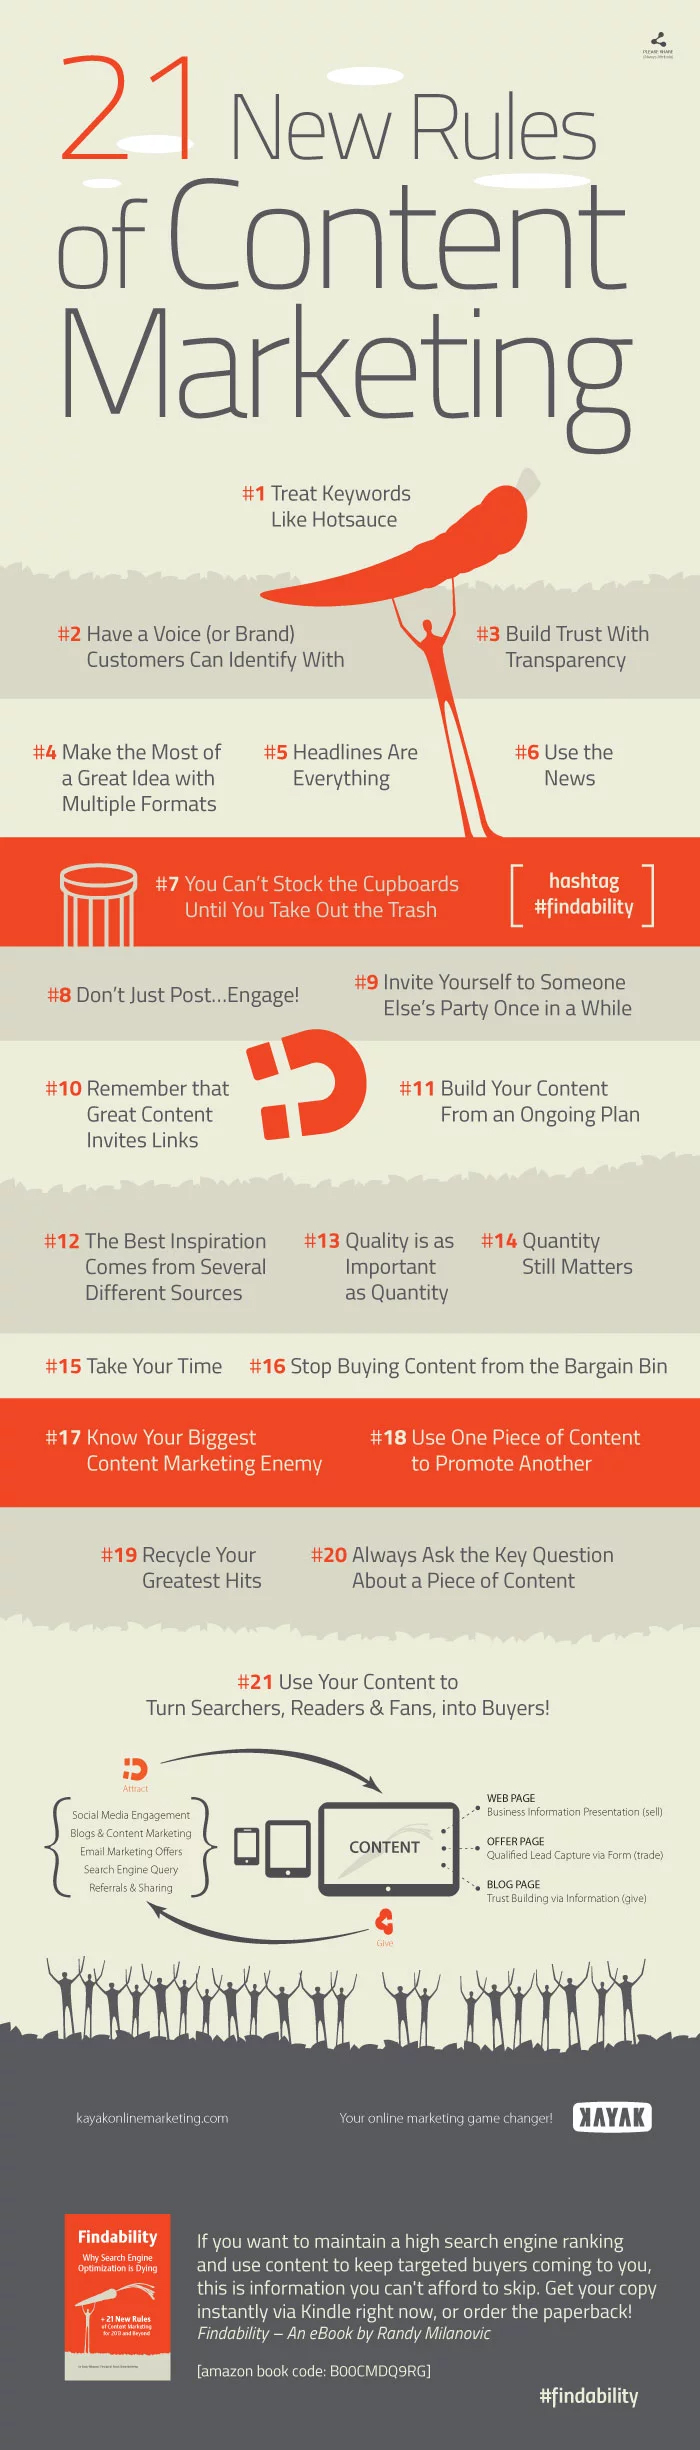 Infographic outlines a listing of content marketing tips and pointers